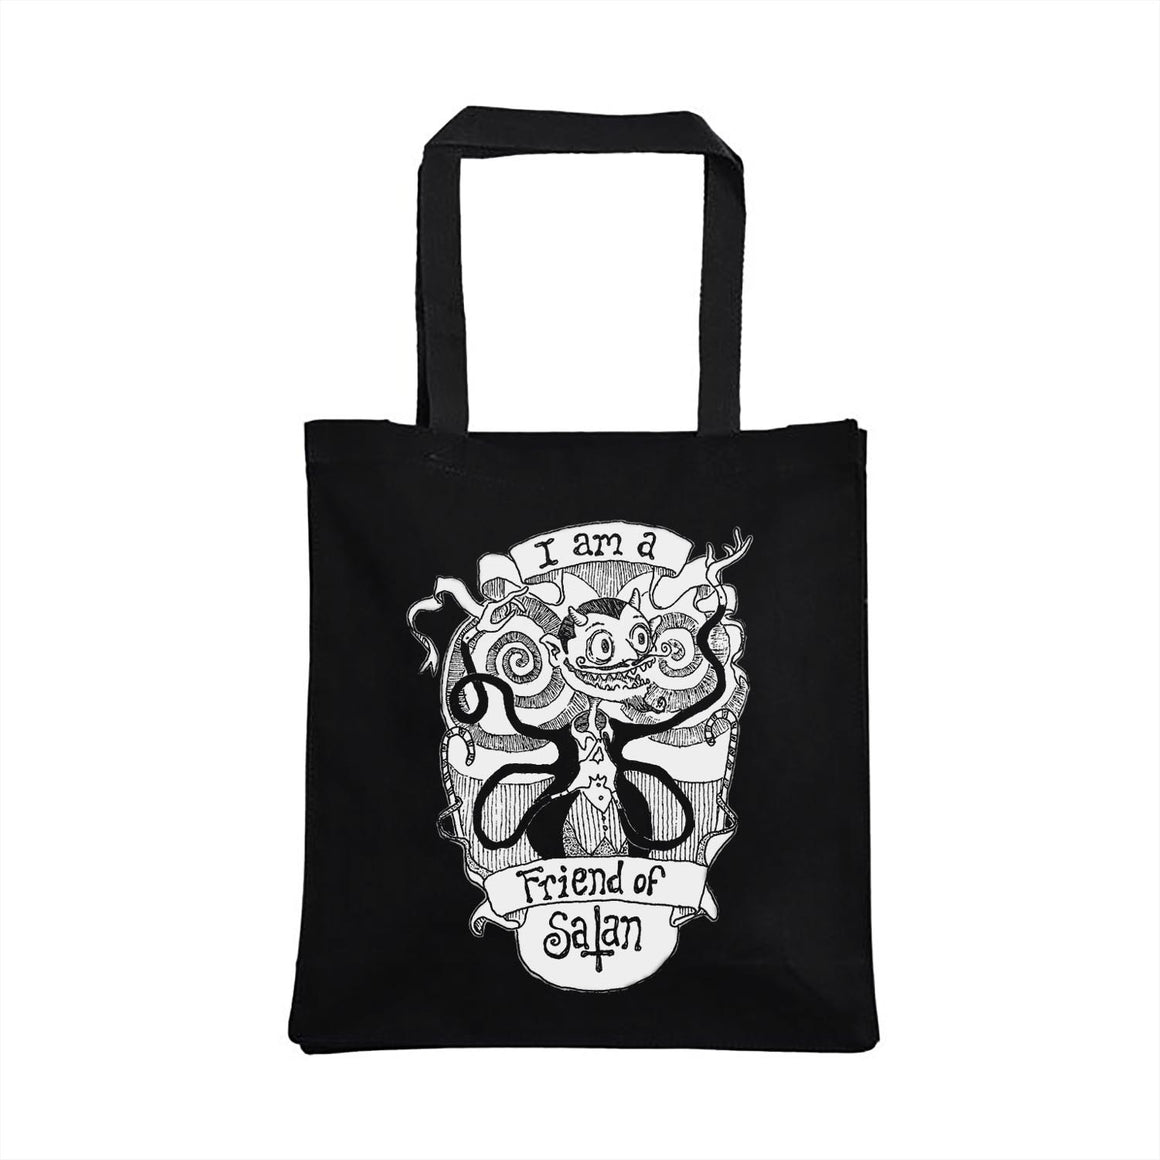 Friend of Satan Tote Bag designed by Lucien Greaves